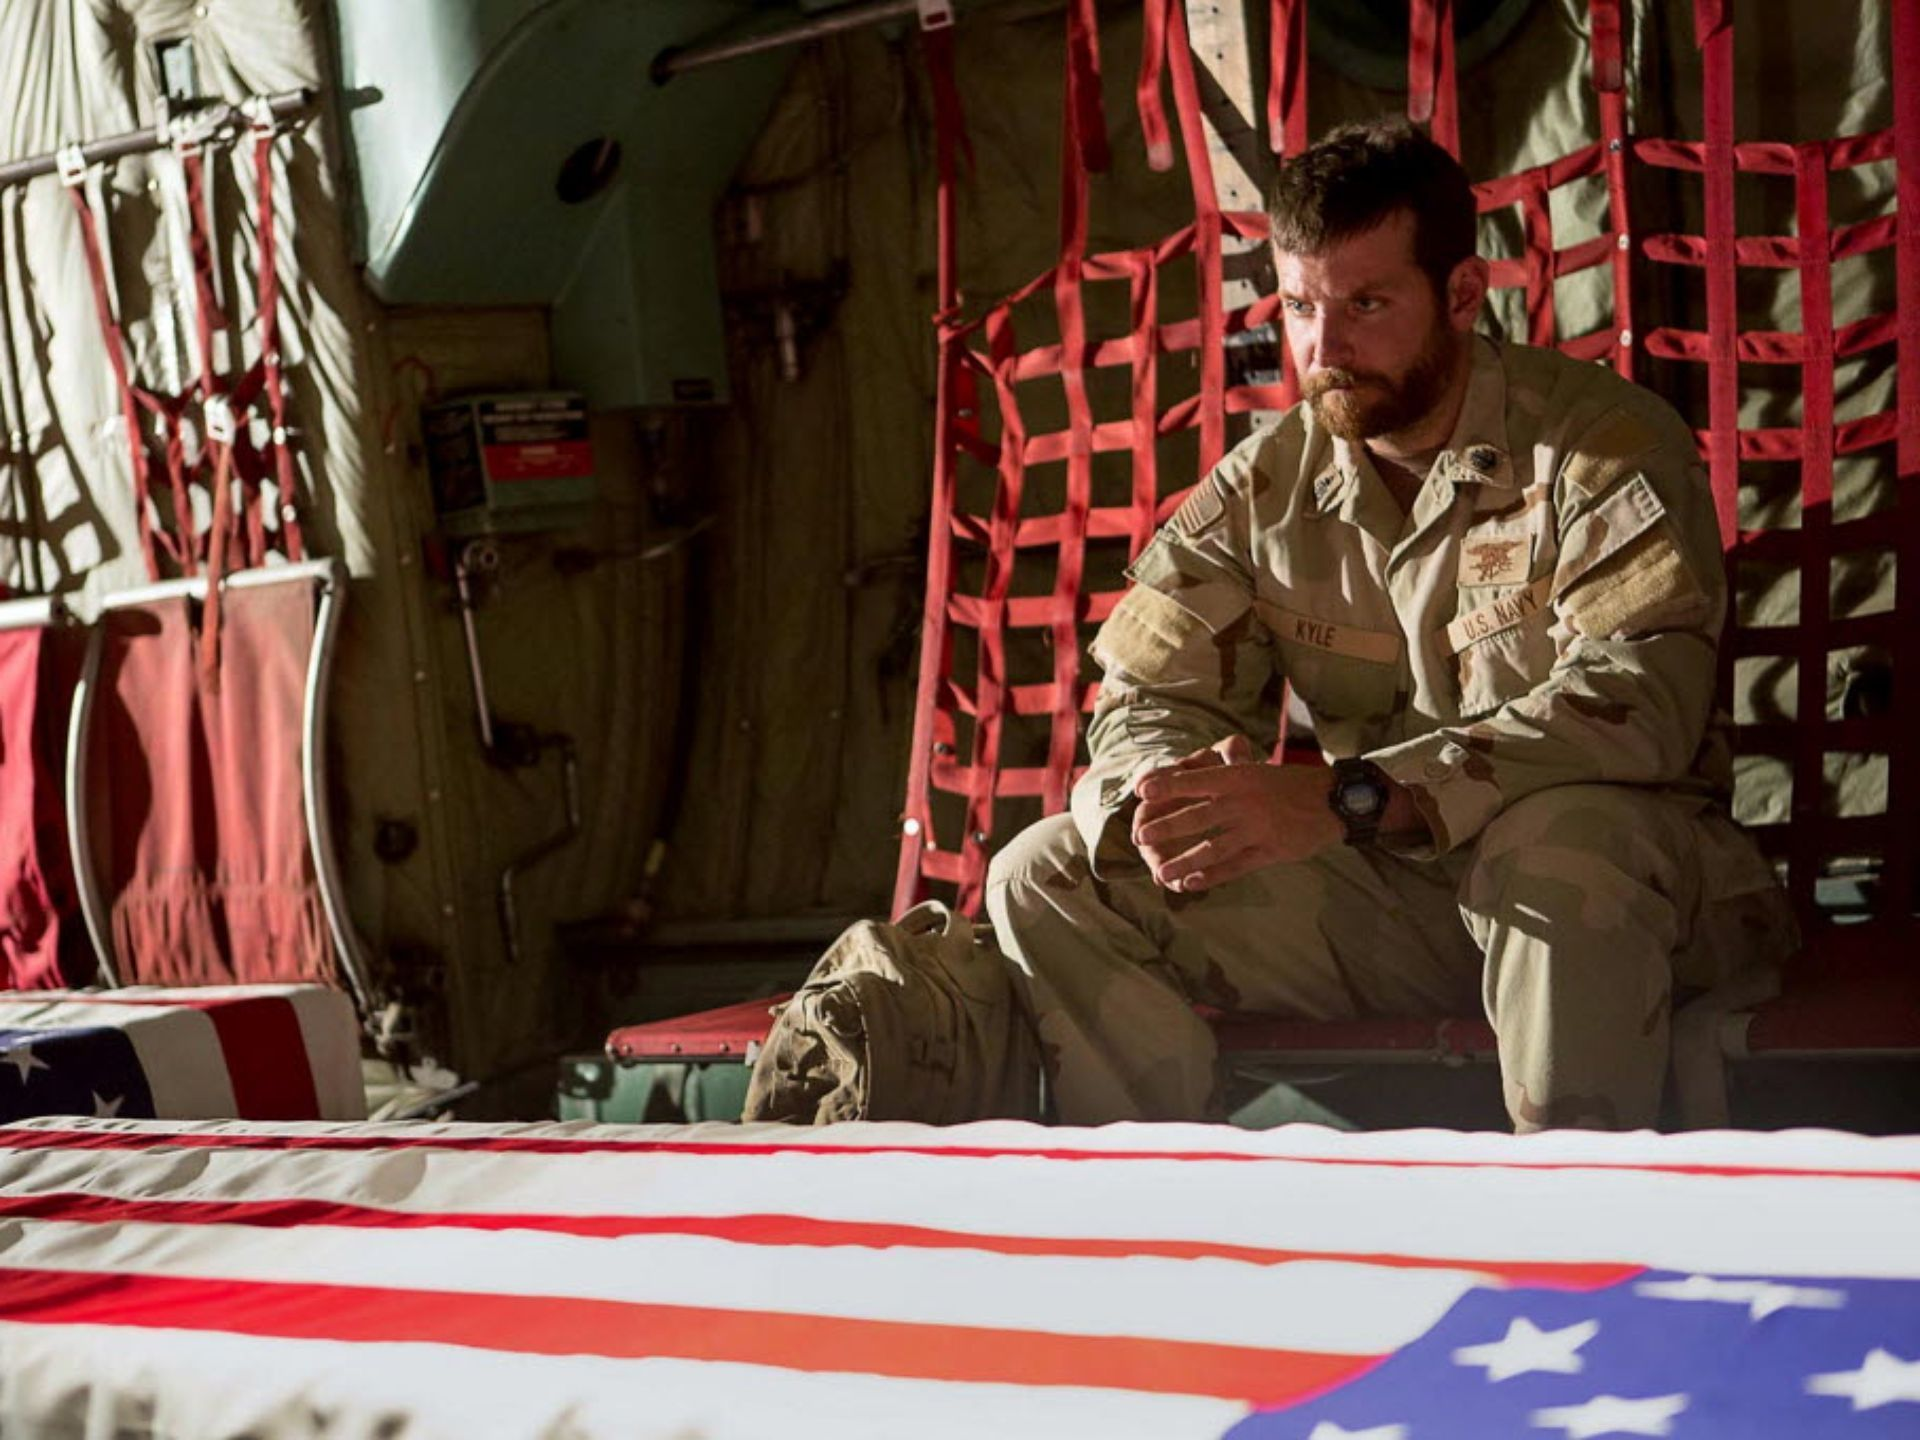 Now They Know How Many Holes it Takes to Fill the Academy's Hall: Fact-Checking 'American Sniper'